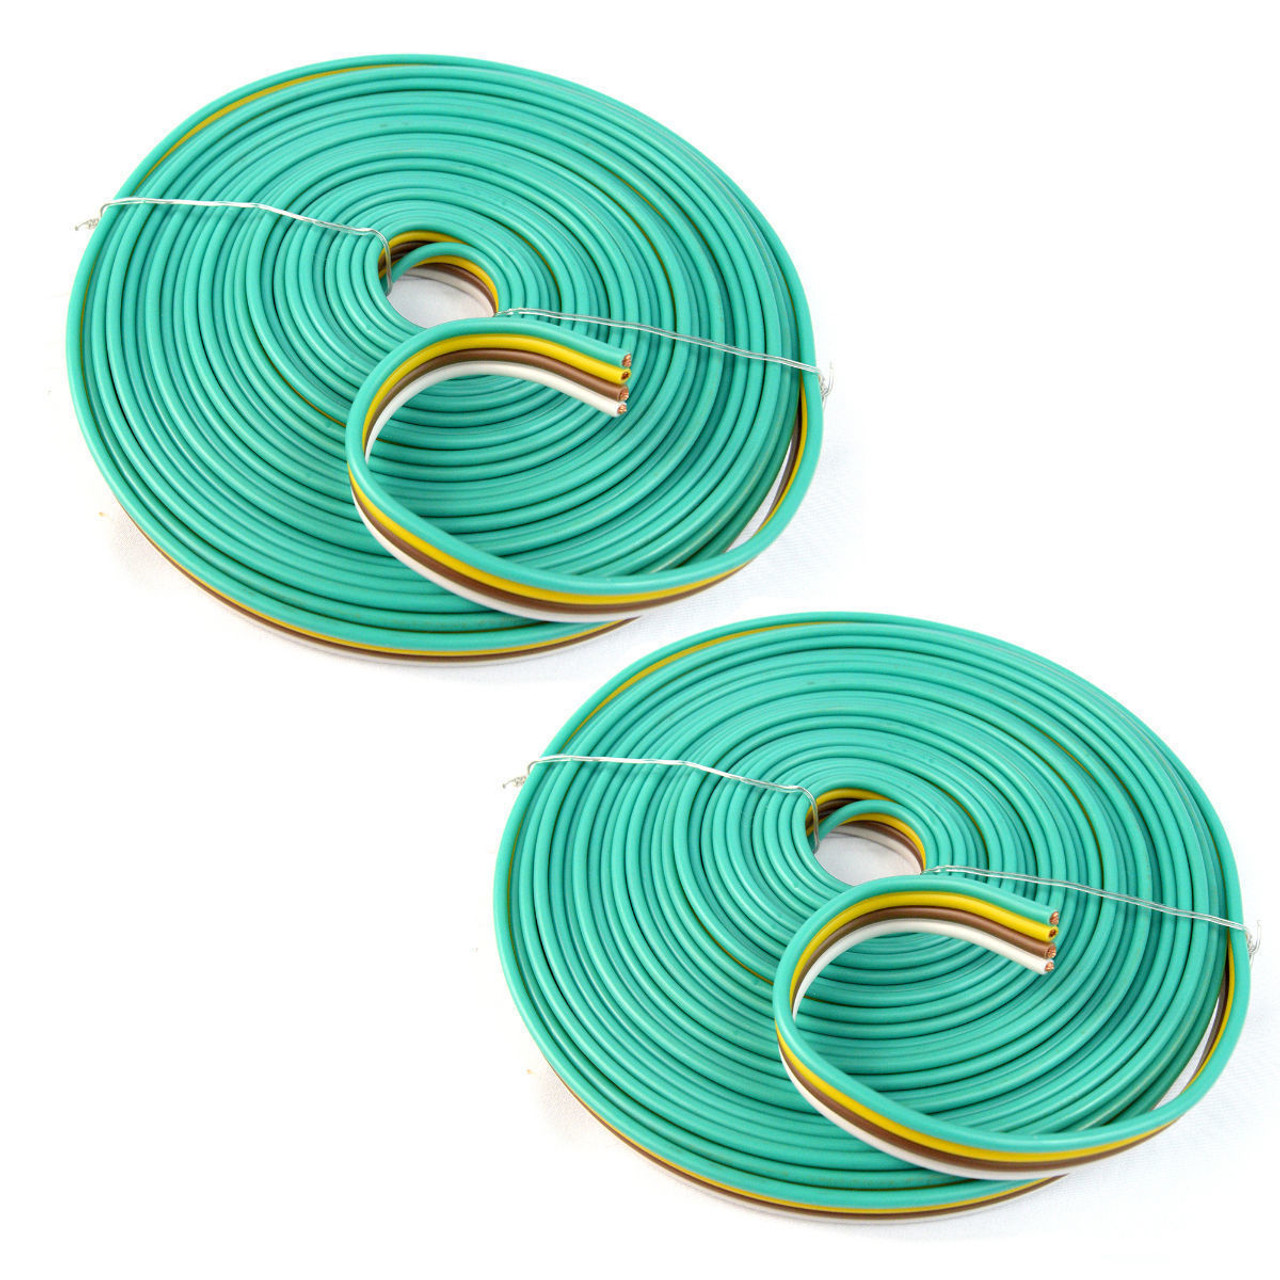 medium resolution of 2 rolls 14 gauge 25 feet flat trailer light cable wiring harness copper wire